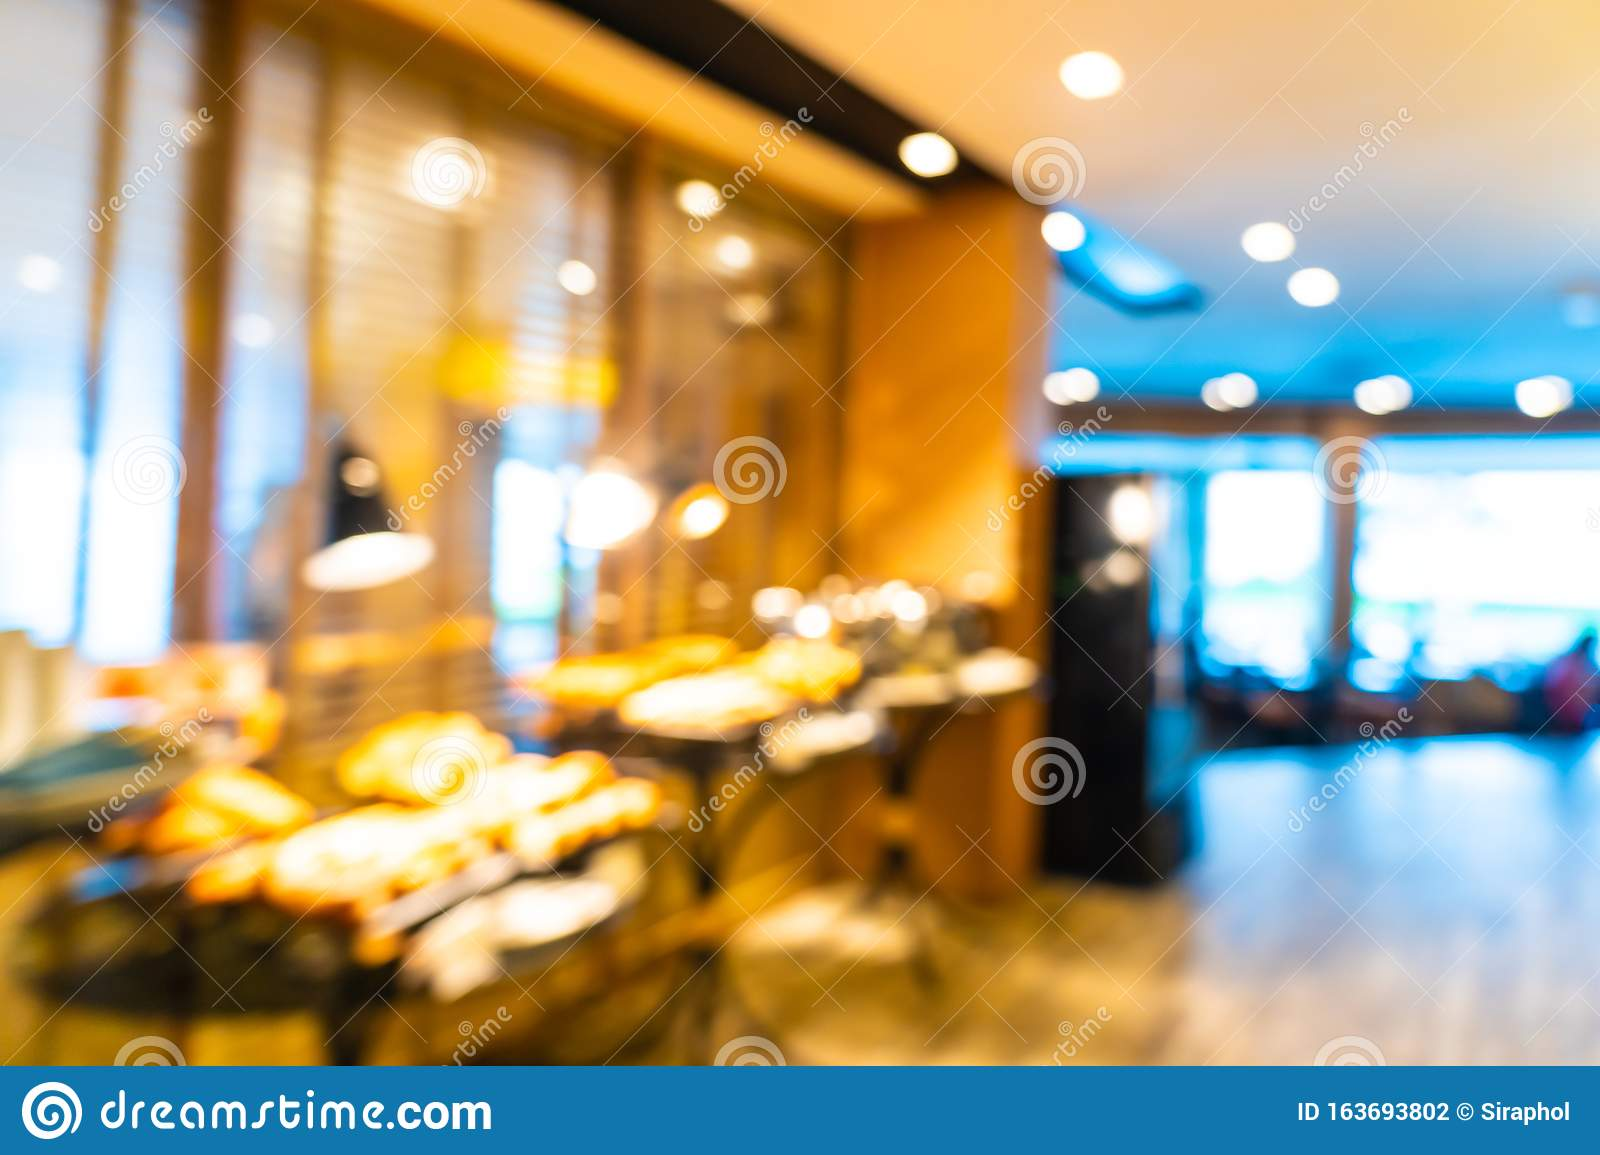 Abstract Blur Coffee Shop Cafe And Restaurant Interior For Background Stock Photo Image Of Barista Interior 163693802